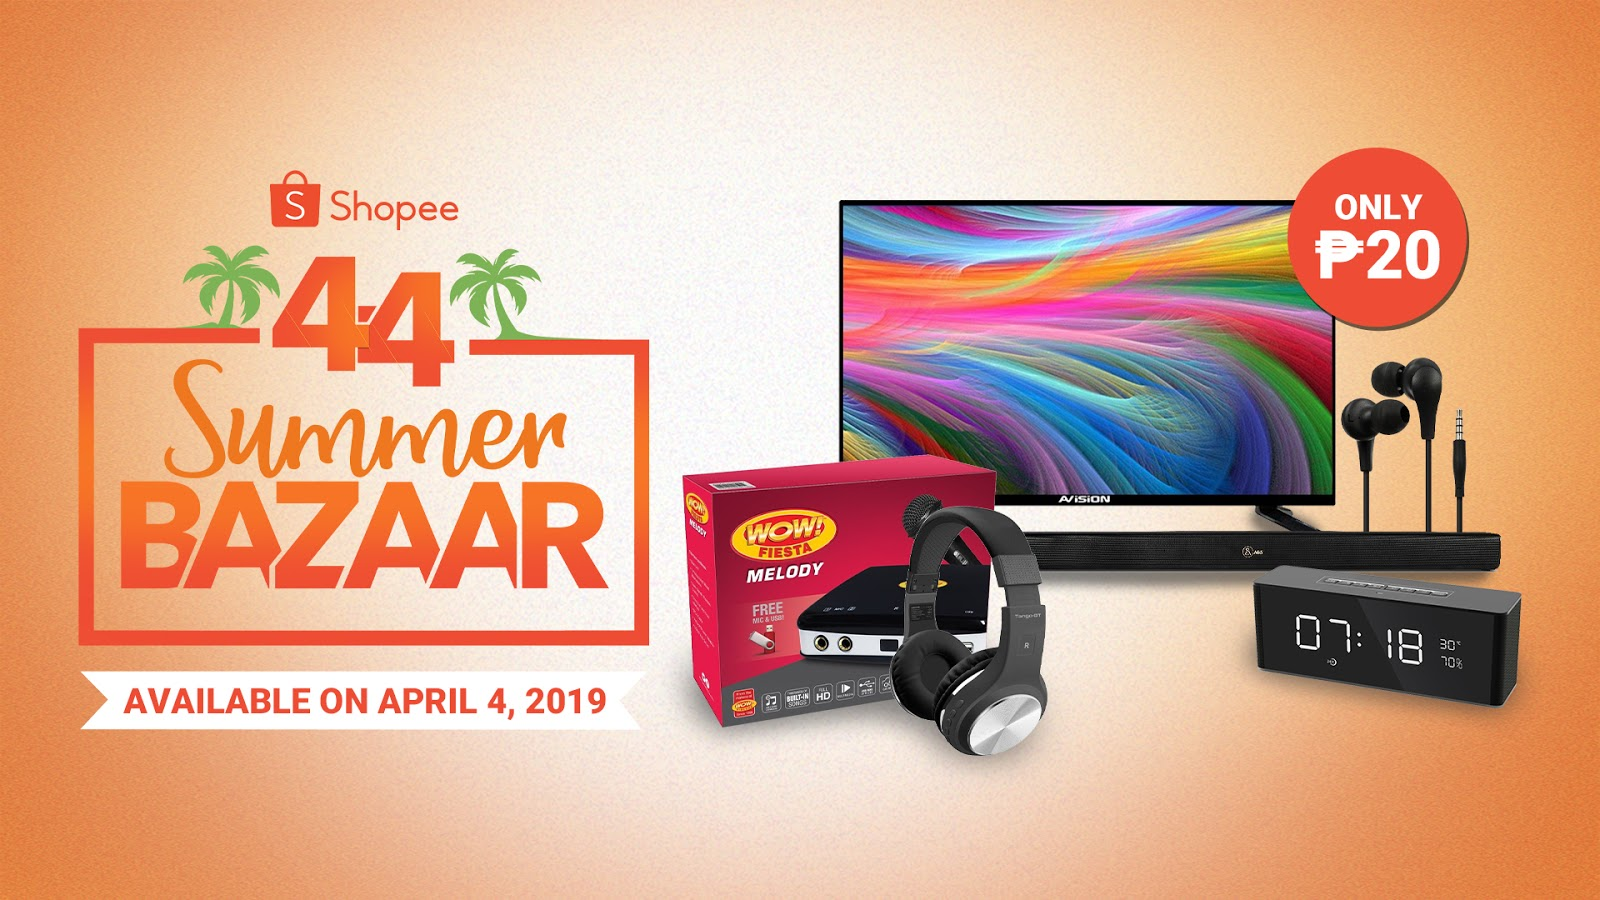 20faf1424719b Shopee, is dropping prices to as low as ₱20 for some amazing products on  the online shopping platform on today's Shopee 4.4 Summer Bazaar.